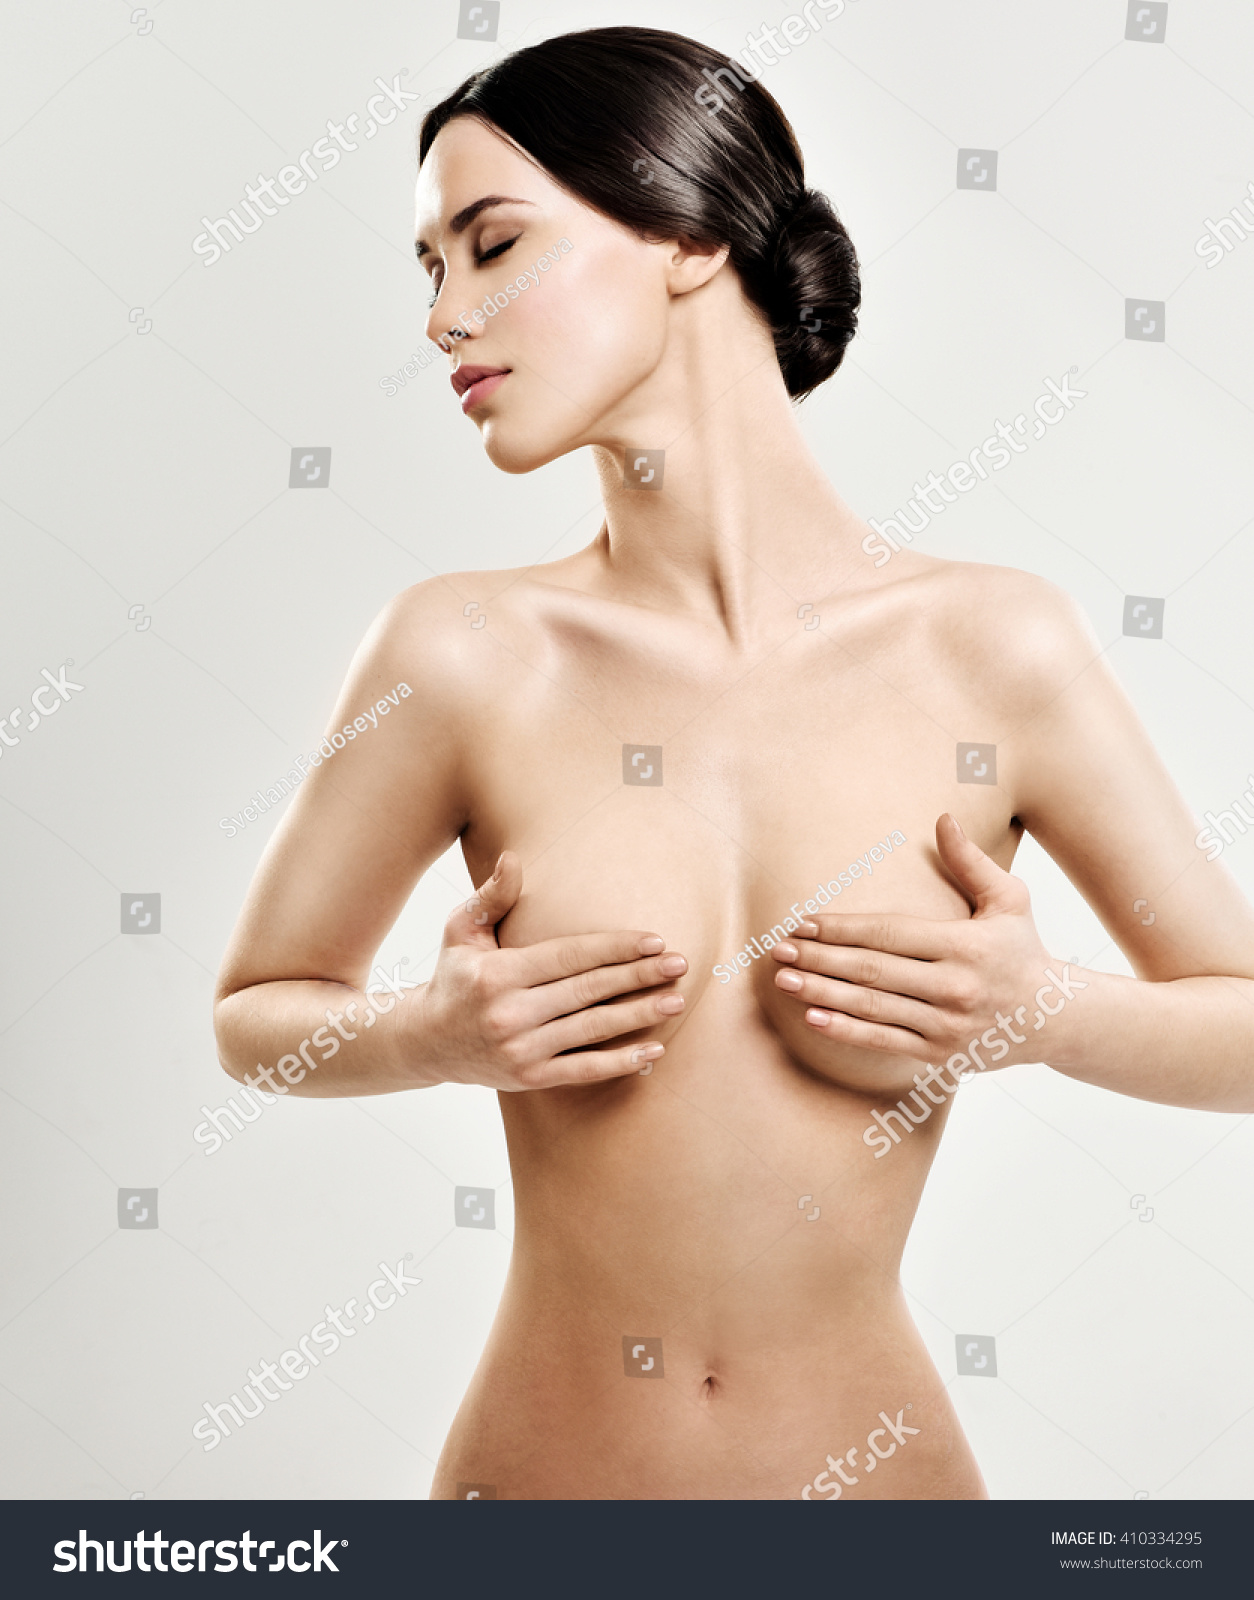 Phrase, simply naked girl clean her body